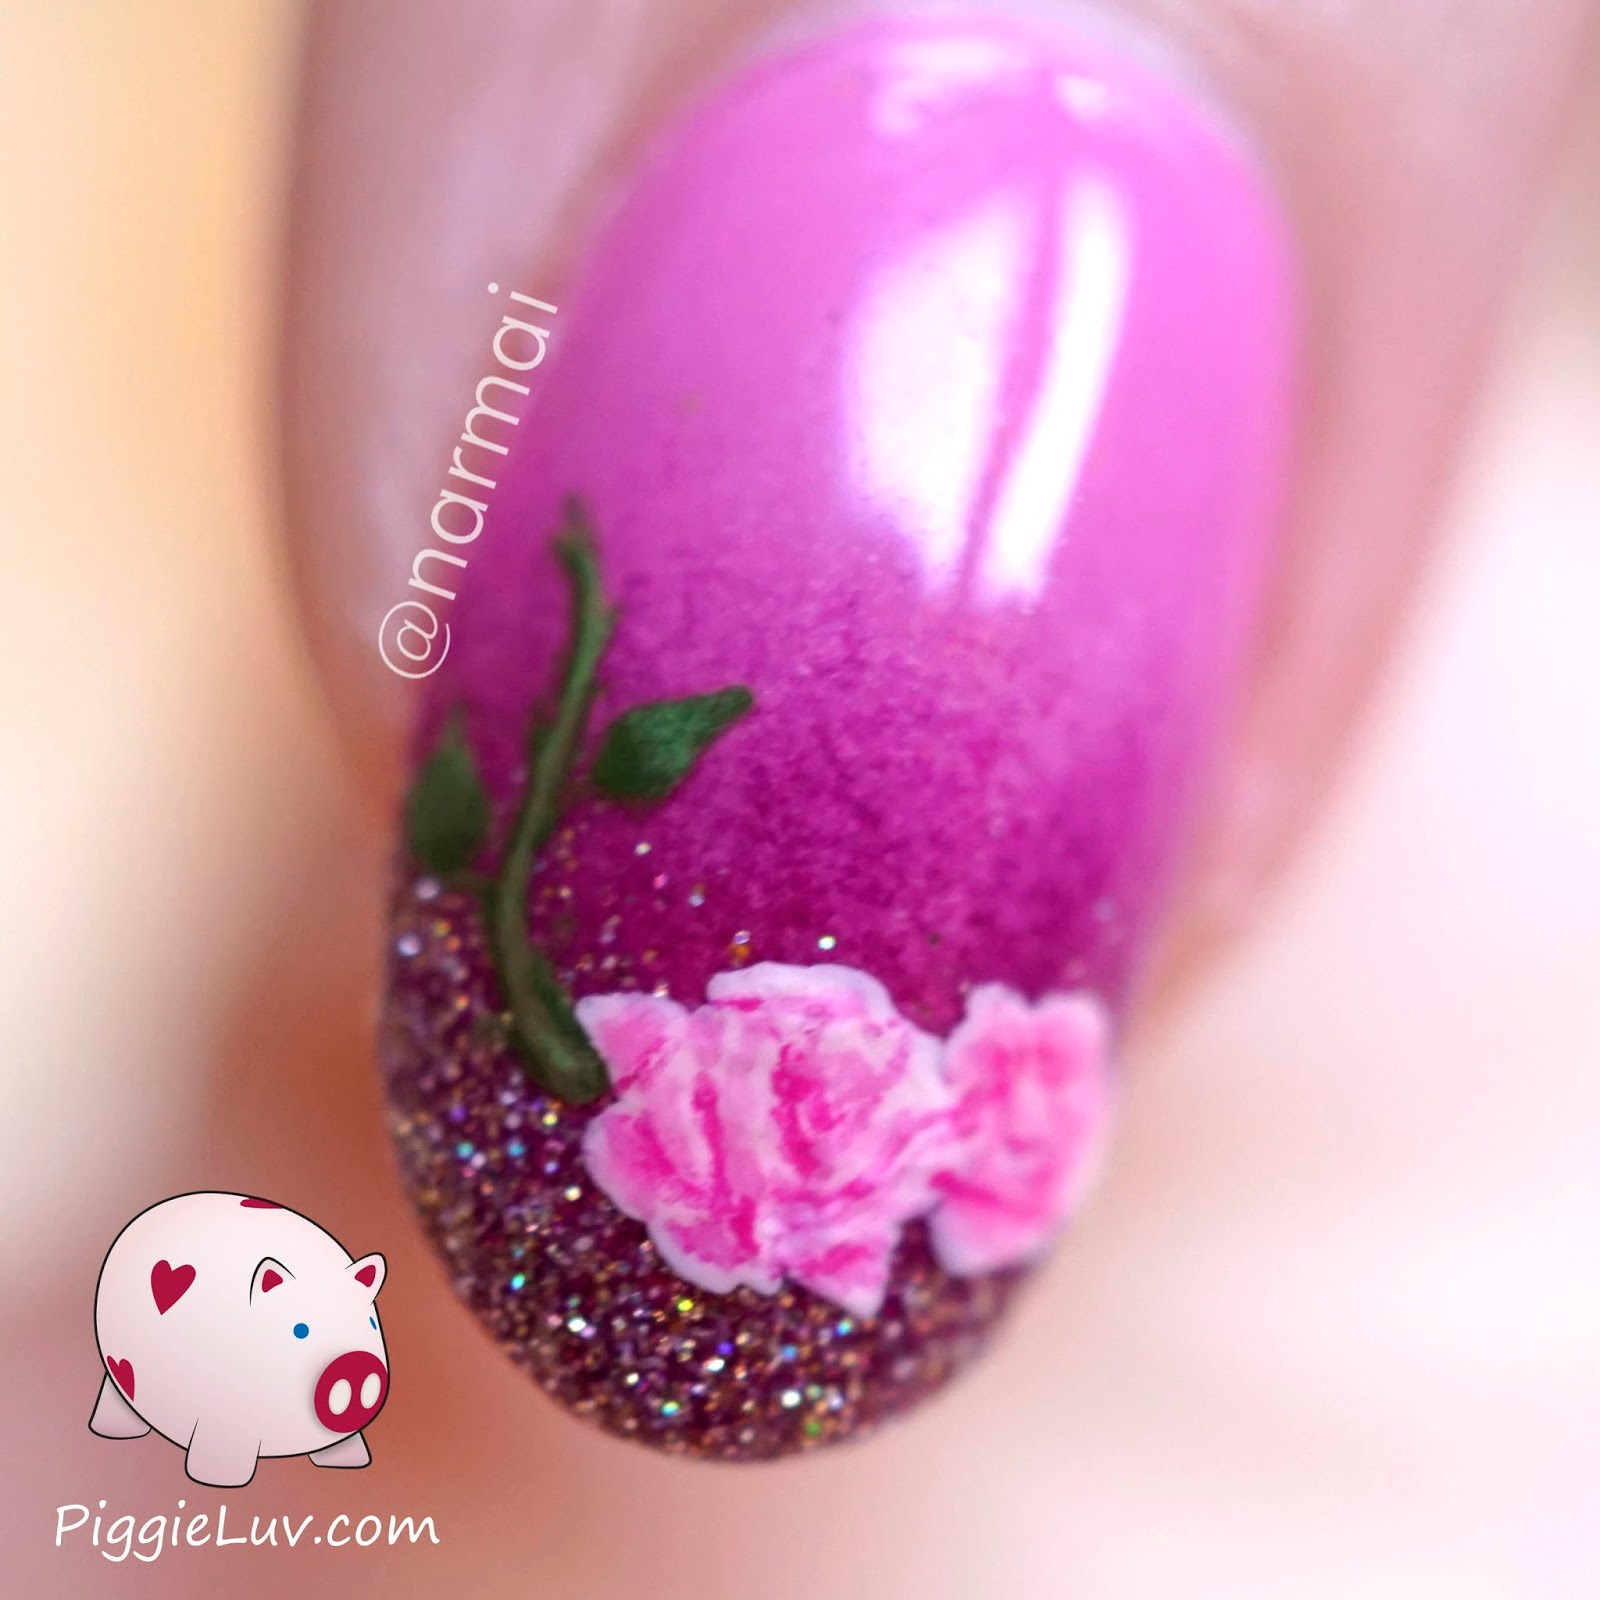 Piggieluv freehand roses nail art for valentines day freehand roses nail art for valentines day prinsesfo Gallery